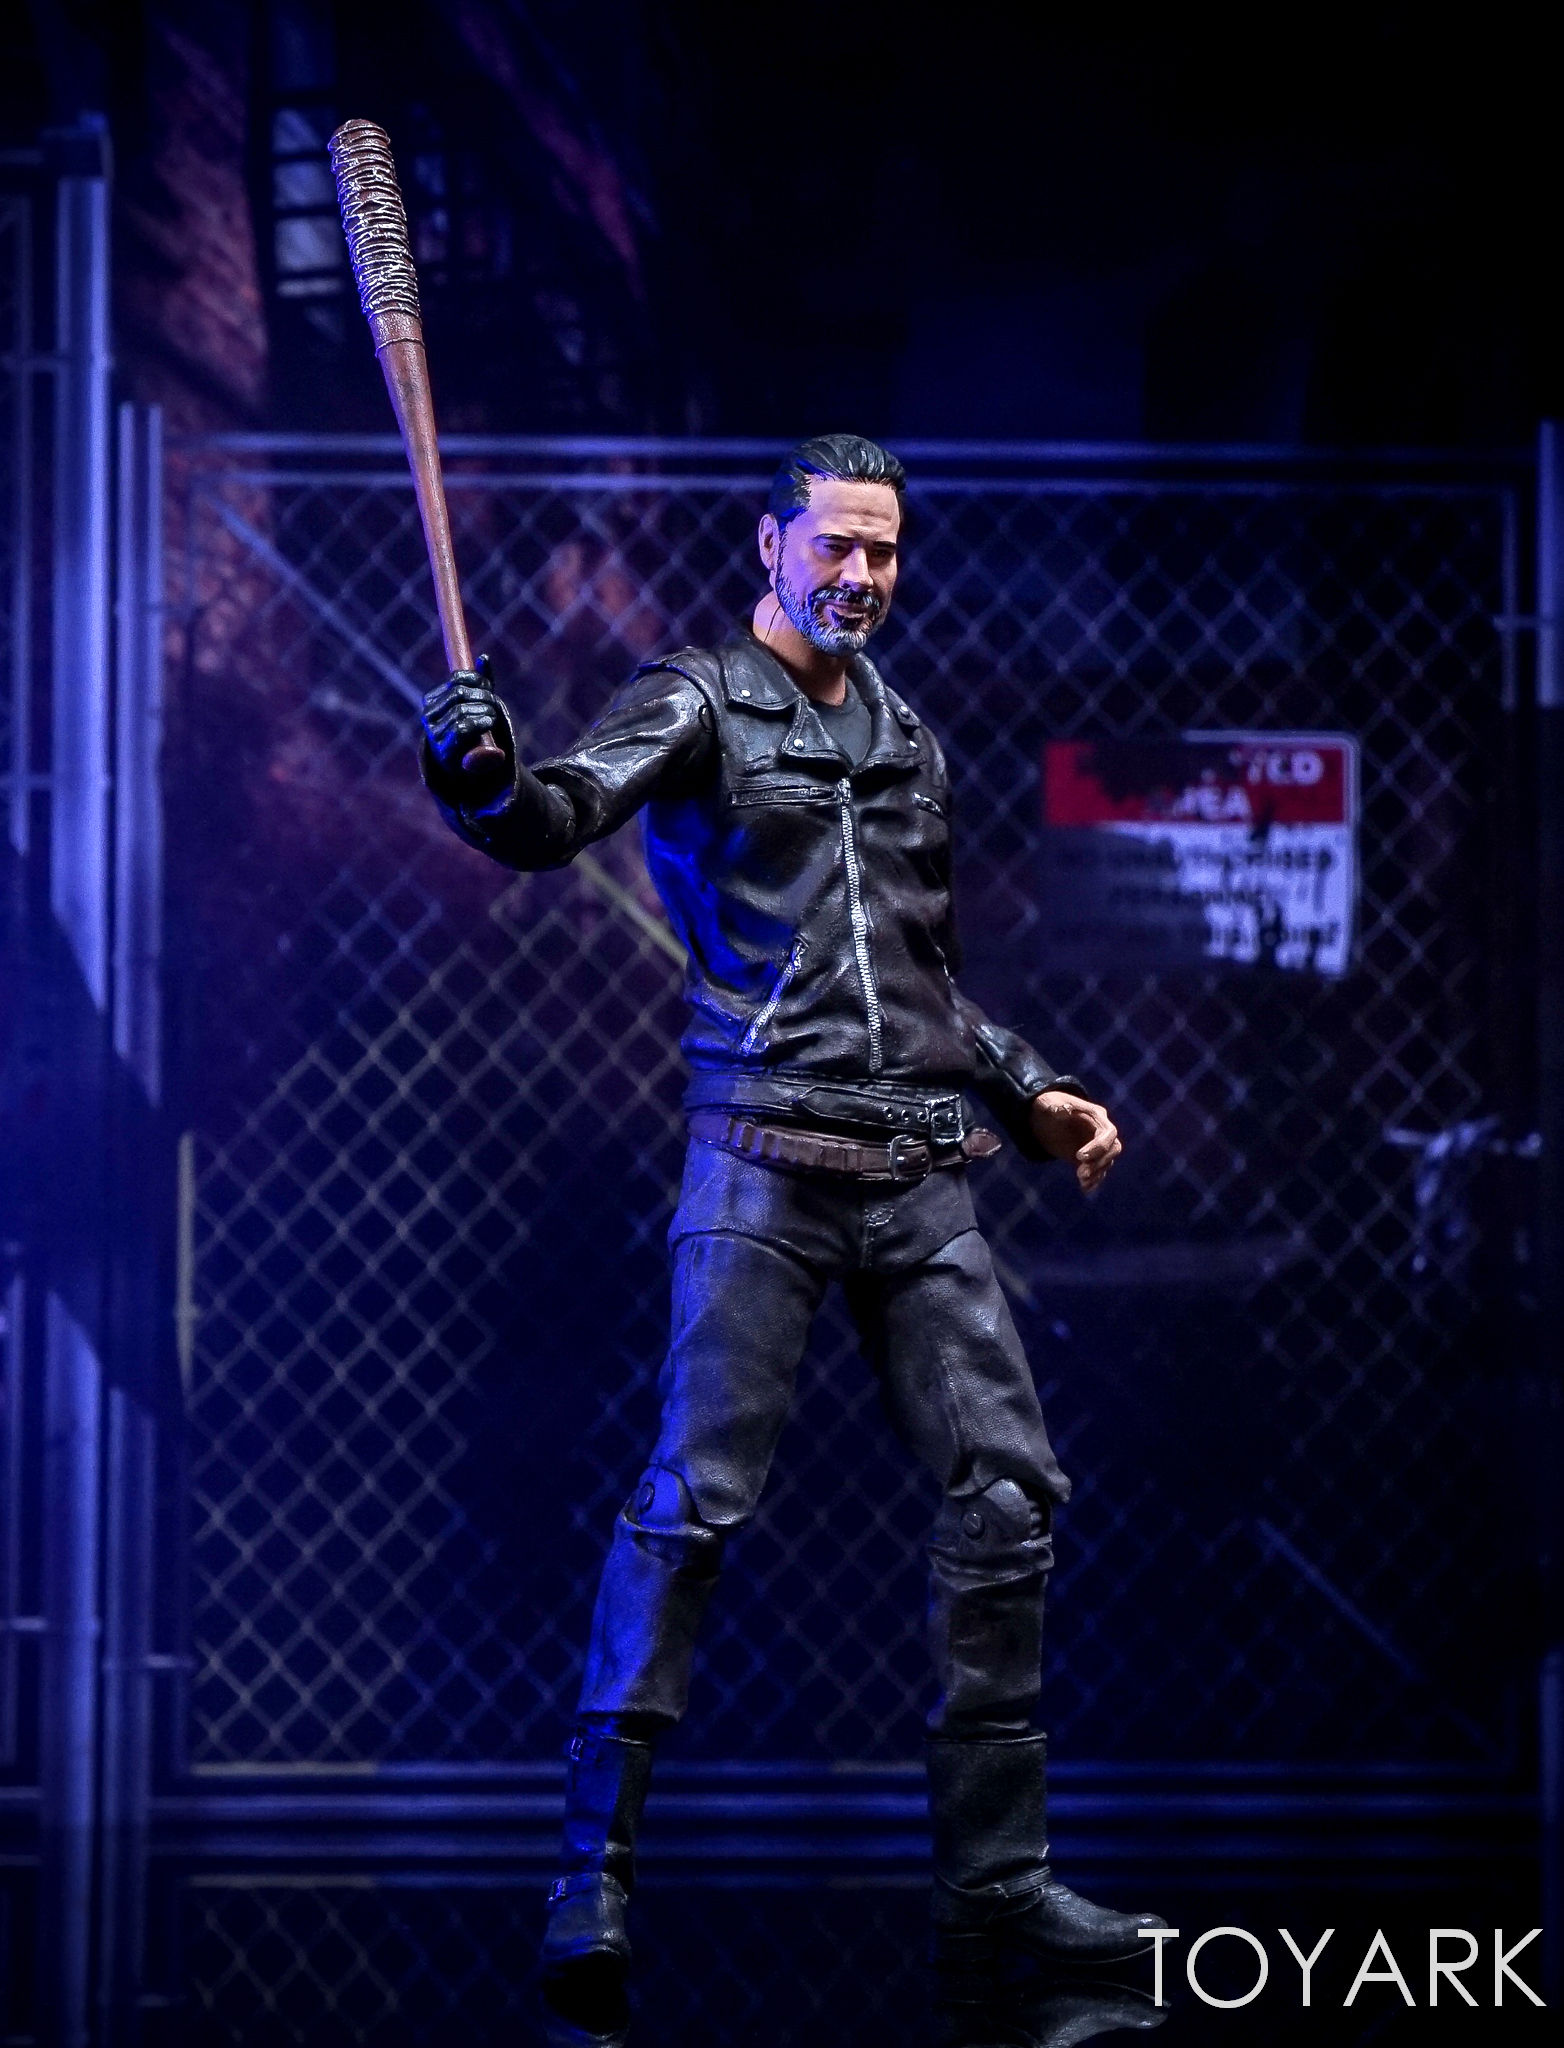 http://news.toyark.com/wp-content/uploads/sites/4/2017/05/McFarlane-Walking-Dead-Negan-033.jpg